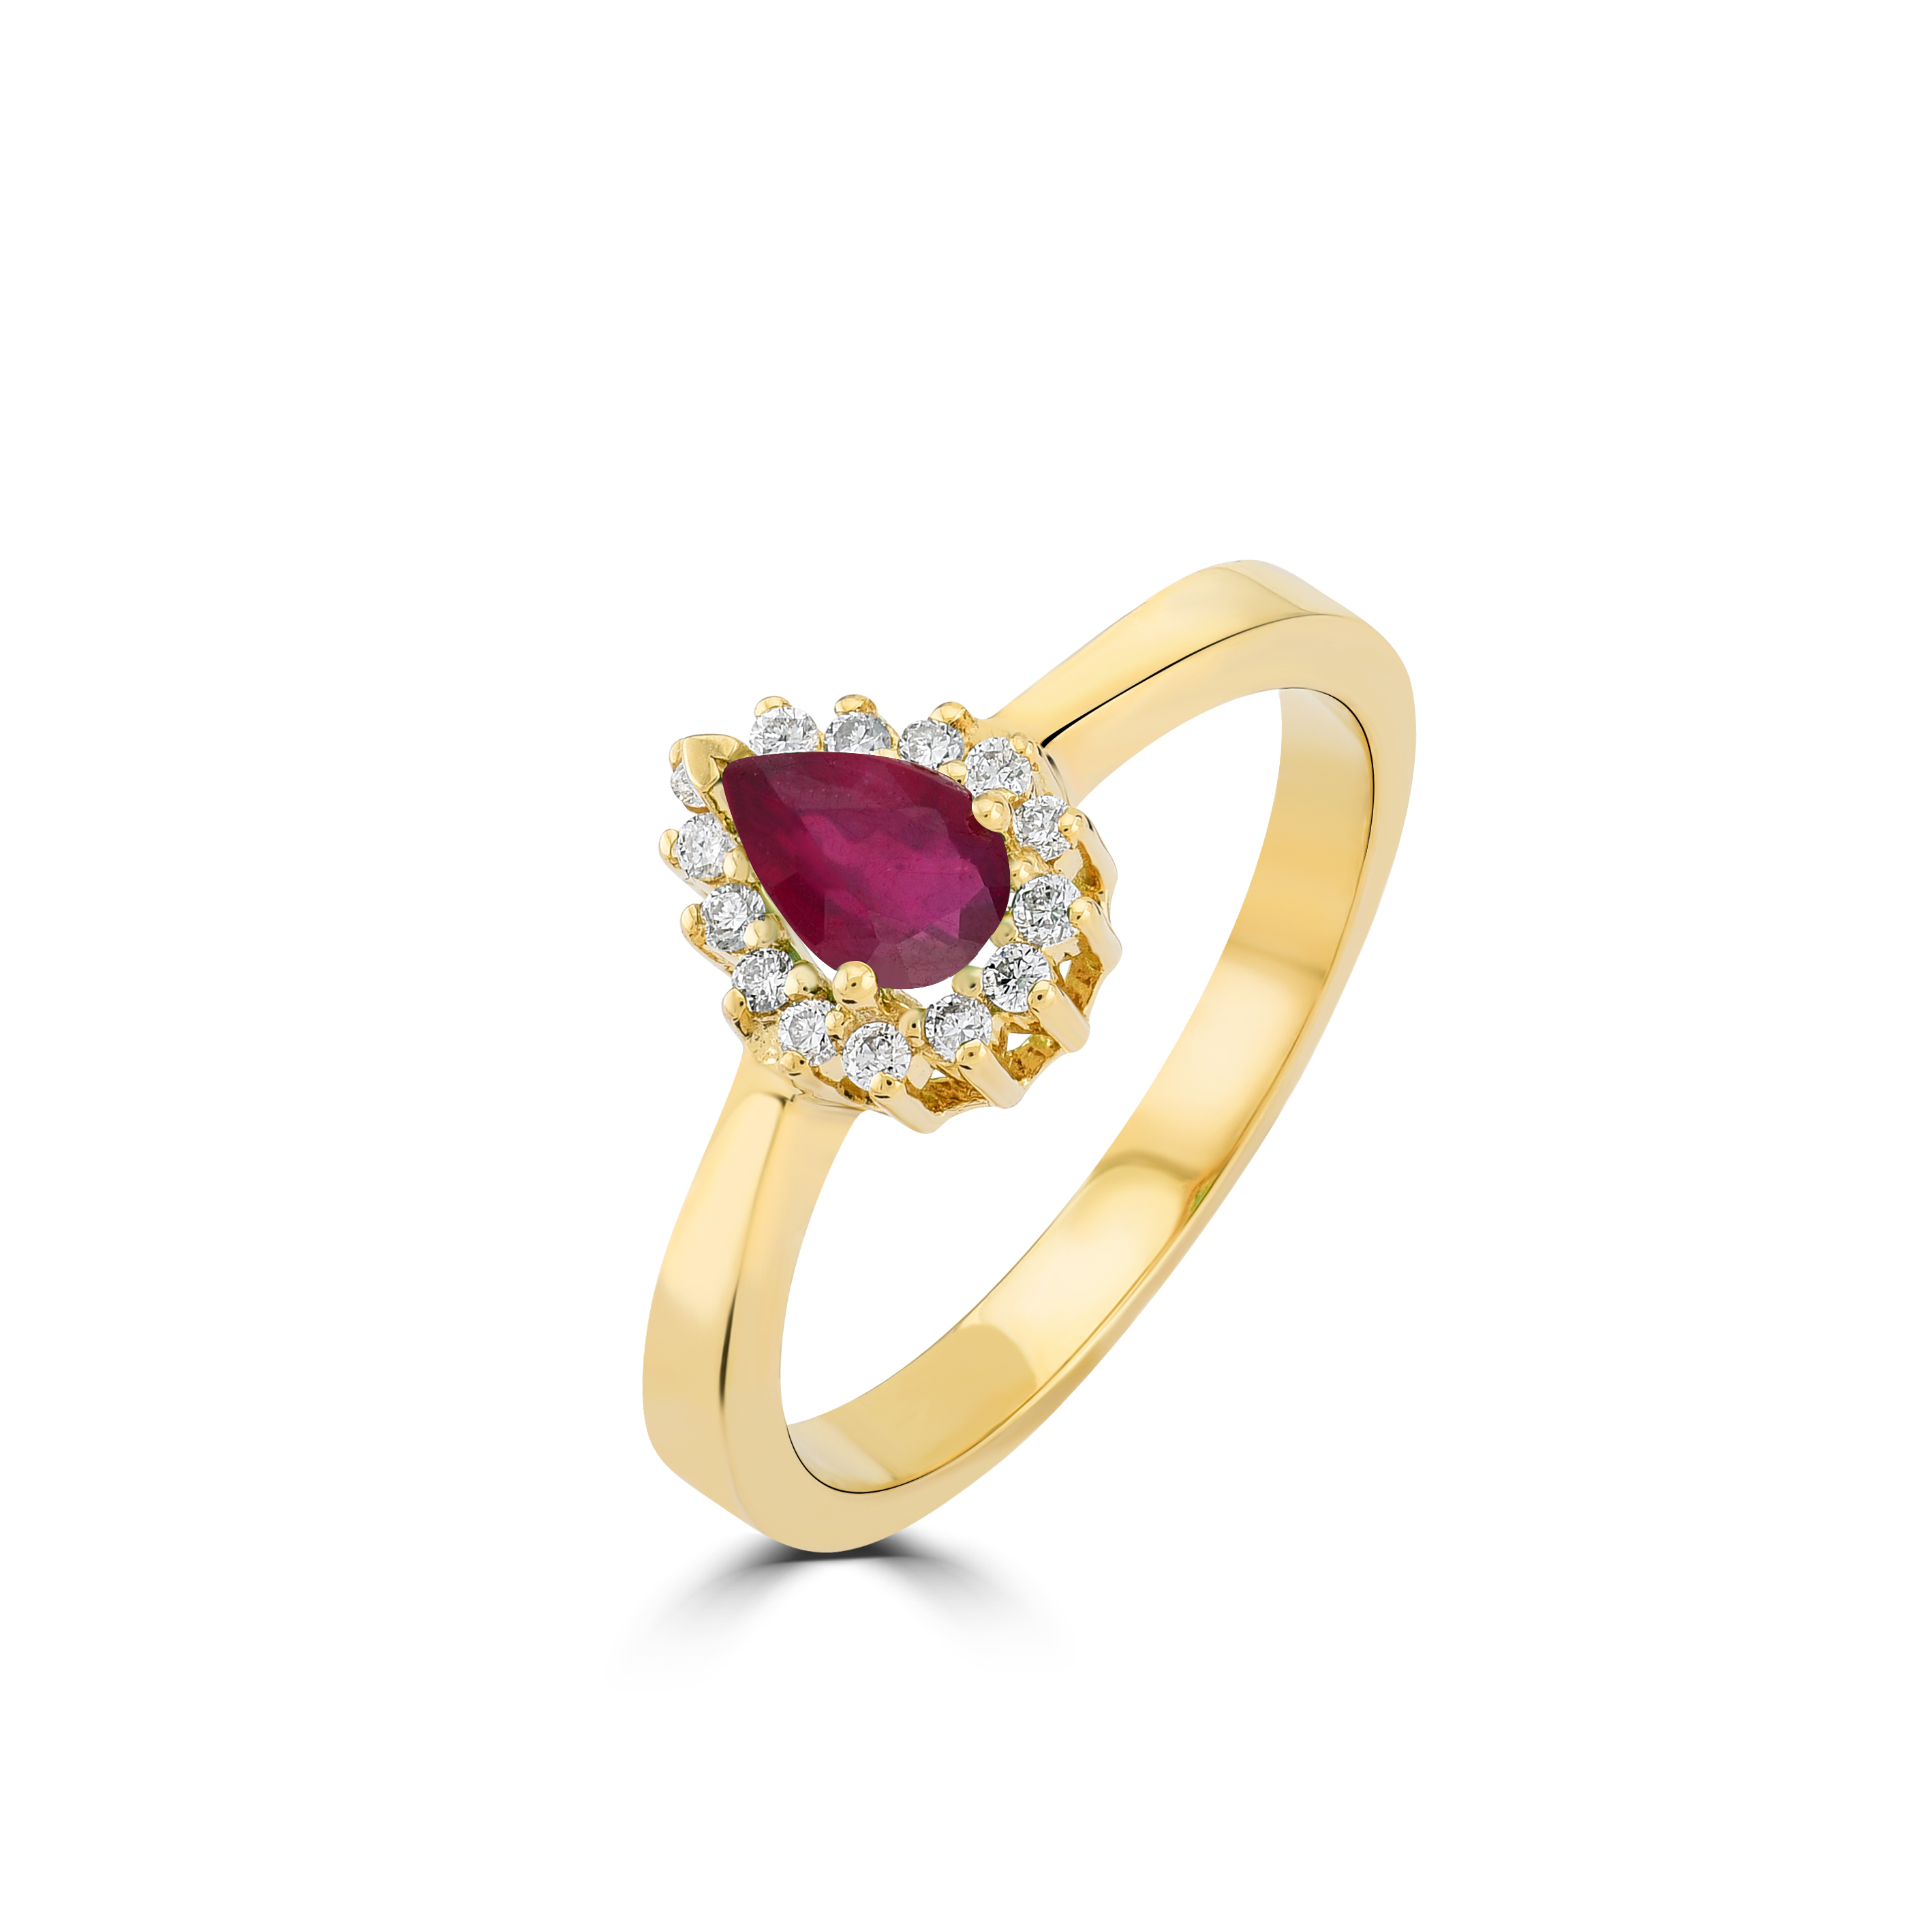 Bague 750/18 K or jaune avec diamants 0.11 ct H/si et rubis 0.56 ct